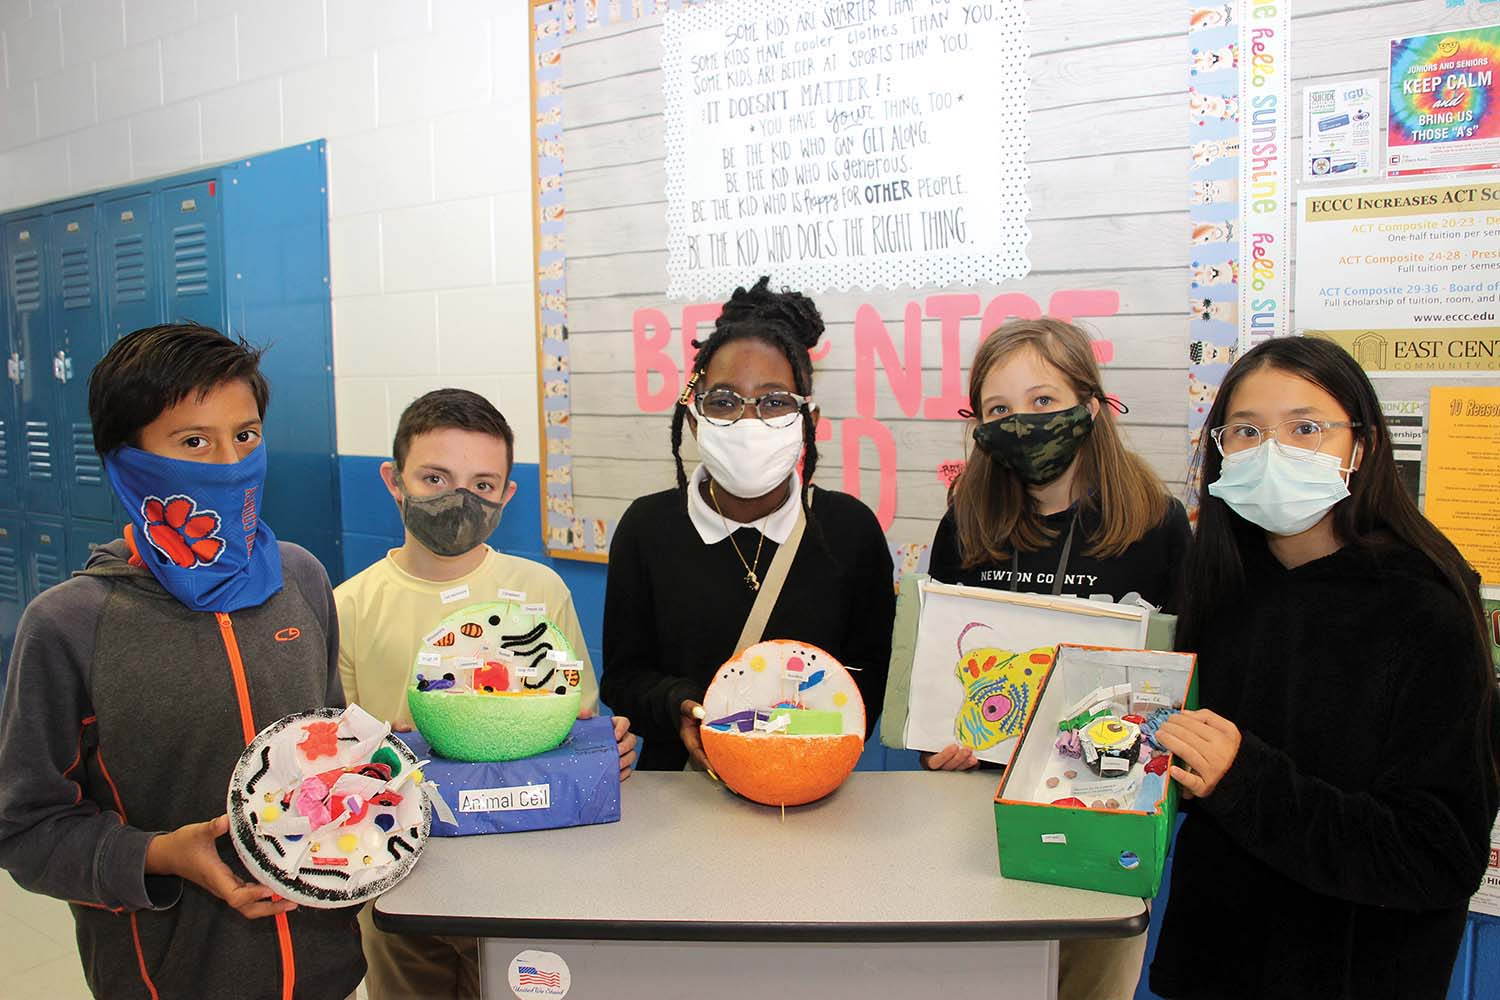 Sixth grade students in Cindy Kitchings' science classes at Newton County Middle School created animal cell models for a class presentation this week from left: Javier Herrera, Landon Stuart, Aoki Leverette, Erica Boykin and Kim Nguyen.